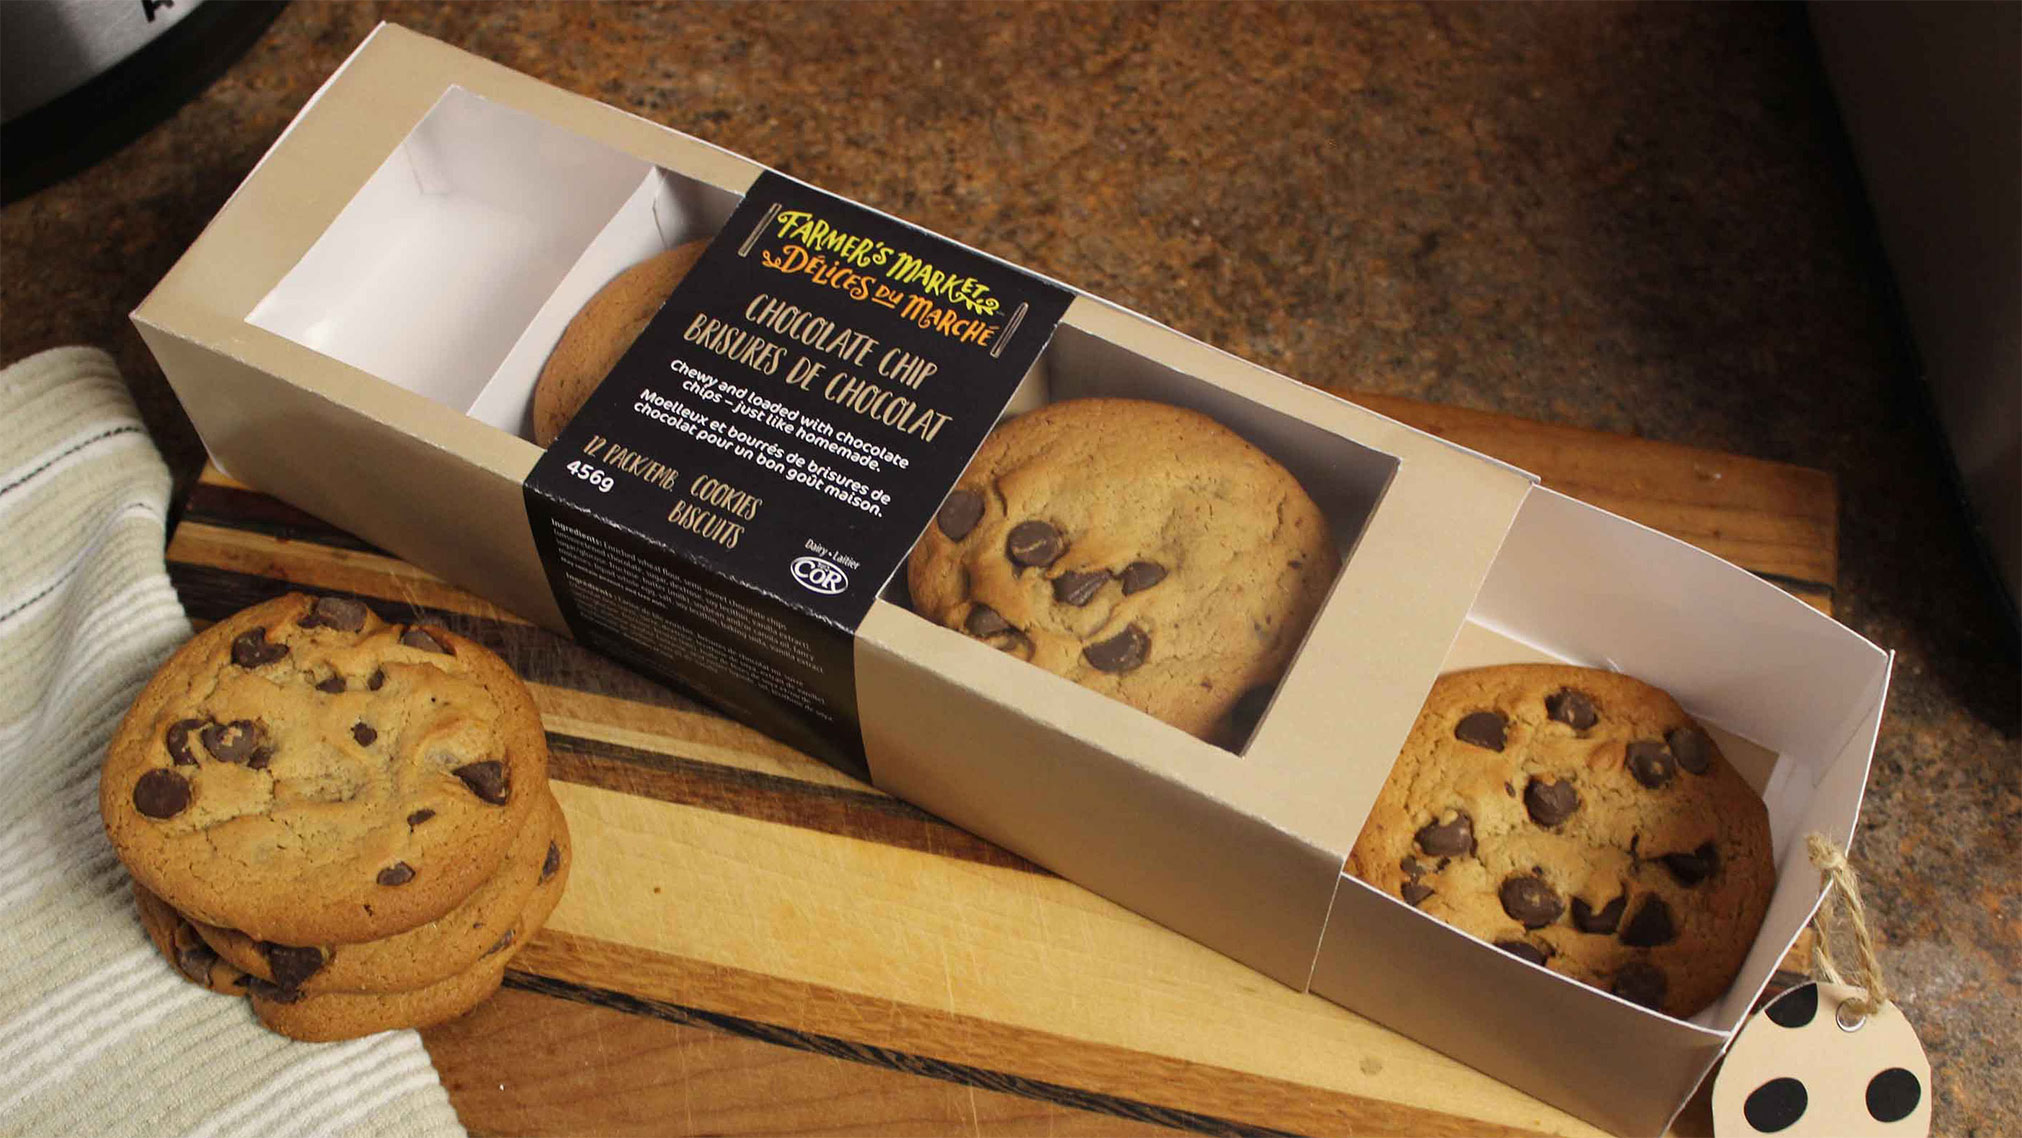 The goal of this project was to redesign the Farmer's Market Cookies packaging and make it more eco-friendly. The new design uses recyclable materials and gives it a more clean look.